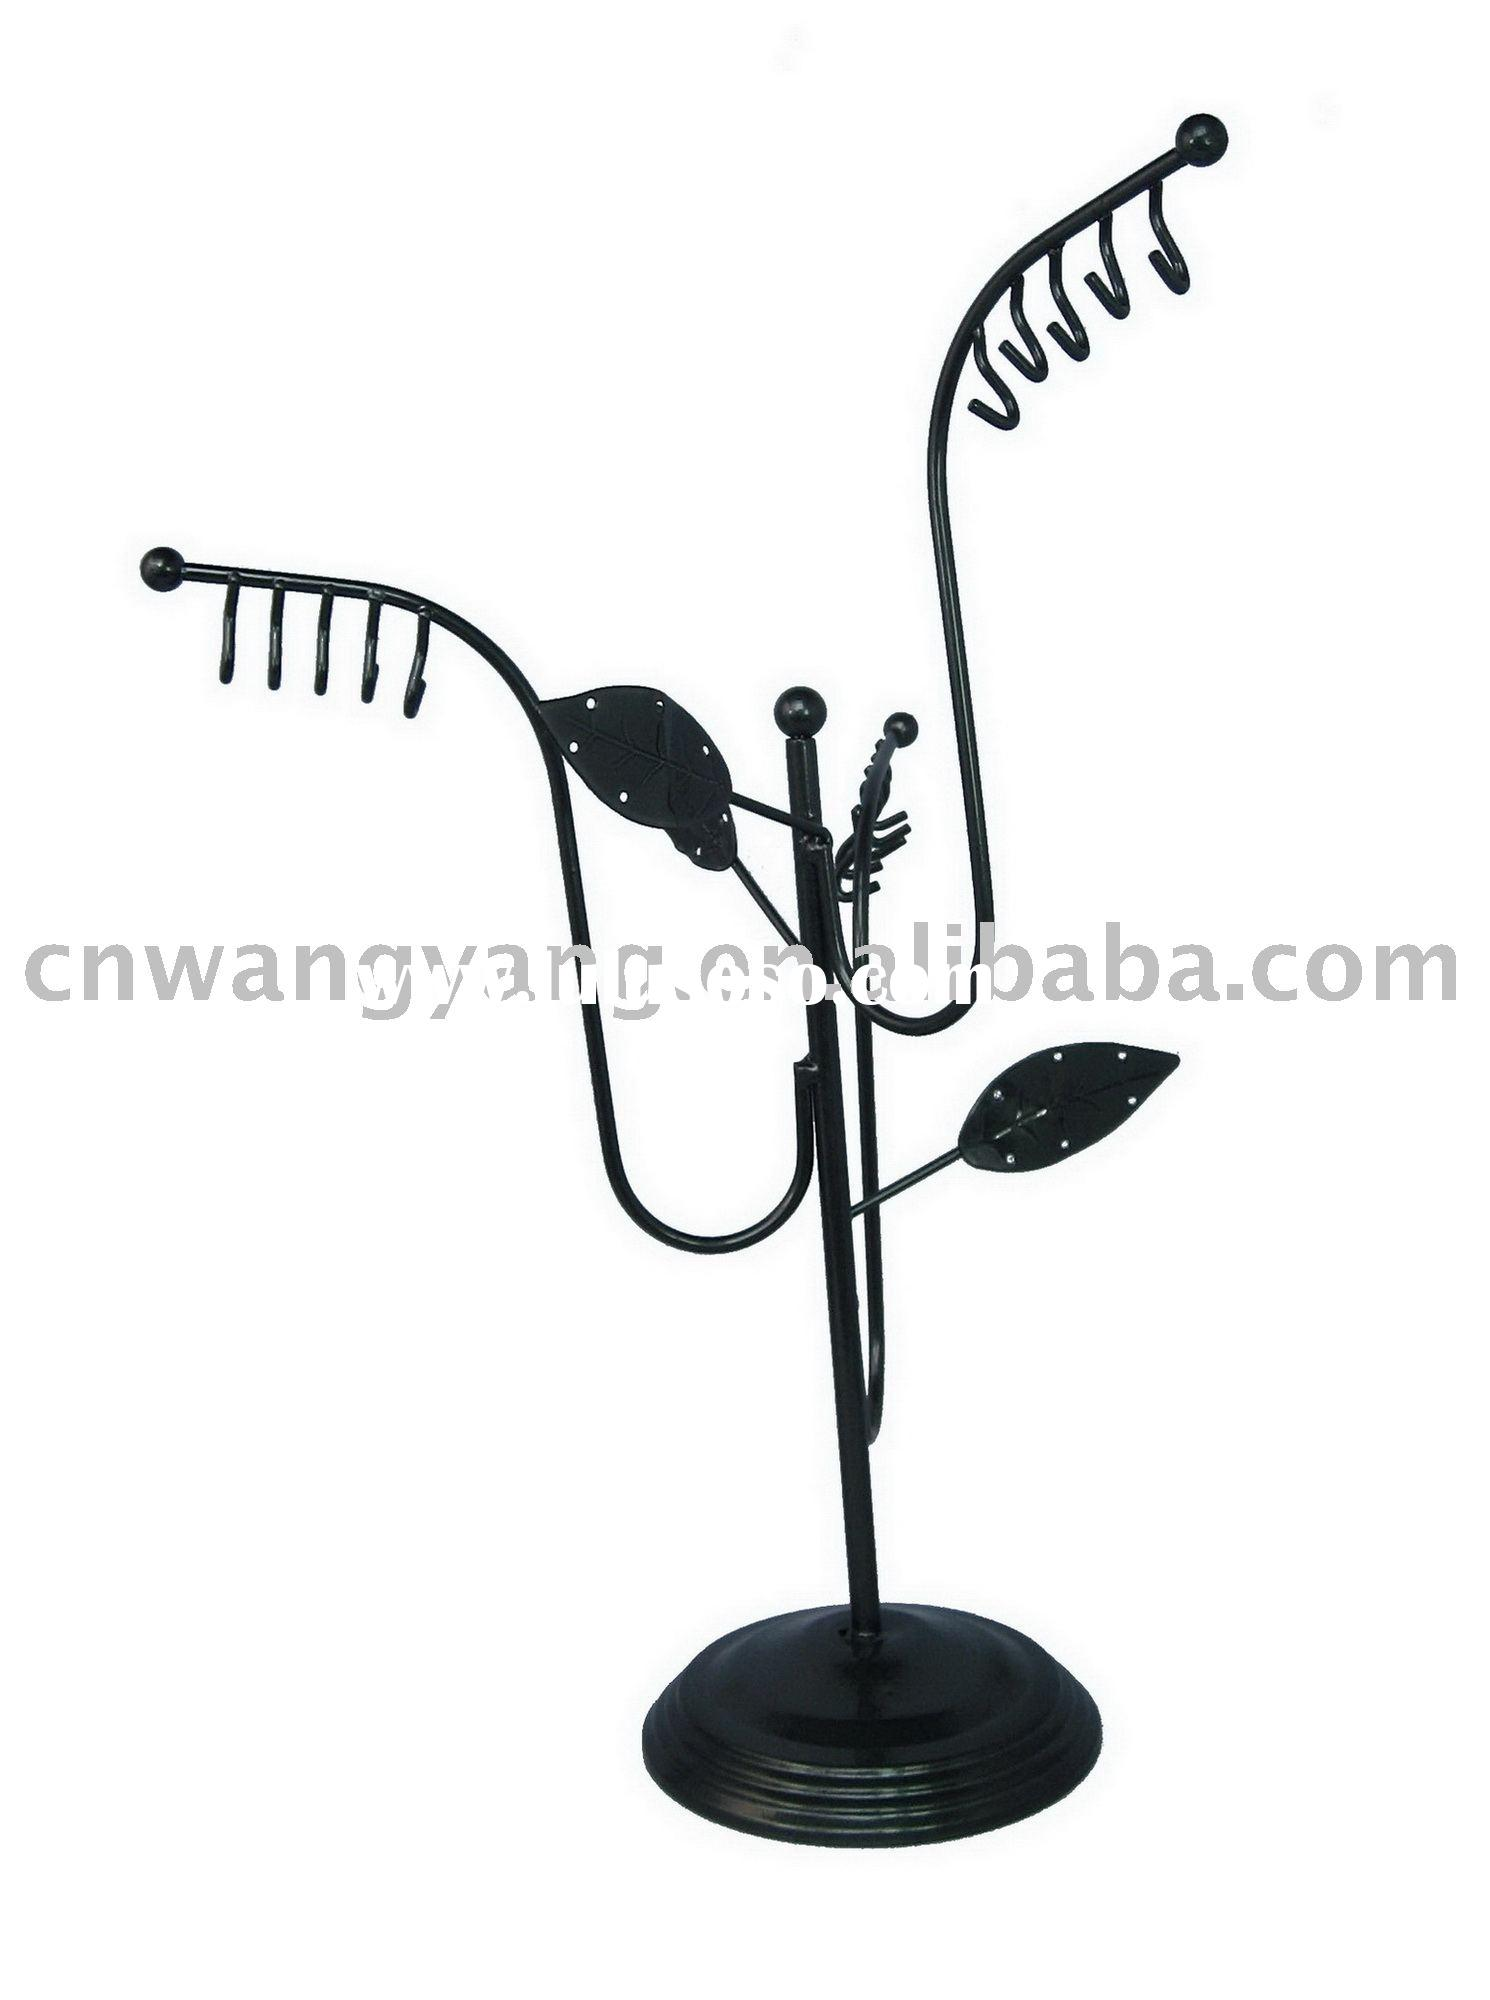 Necklace stand,earring holder,jewelry display